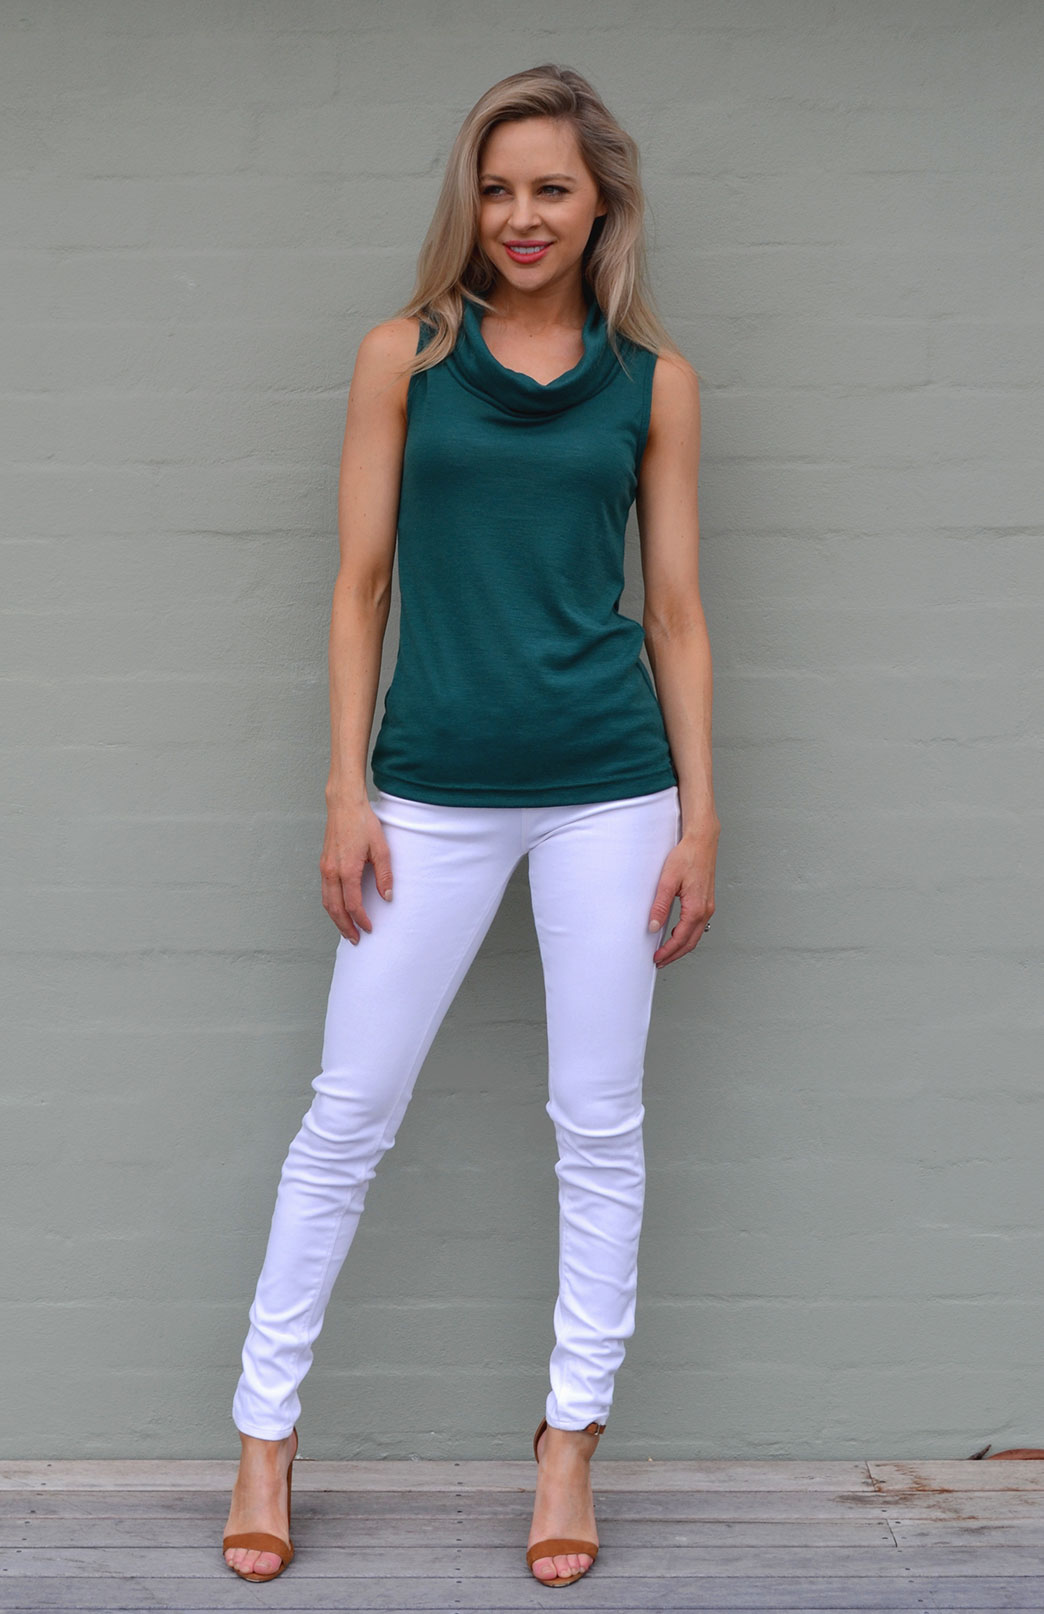 Cowl Neck Top - Sleeveless - Women's Pure Merino Wool Emerald Green Sleeveless Cowl Neck Top - Smitten Merino Tasmania Australia